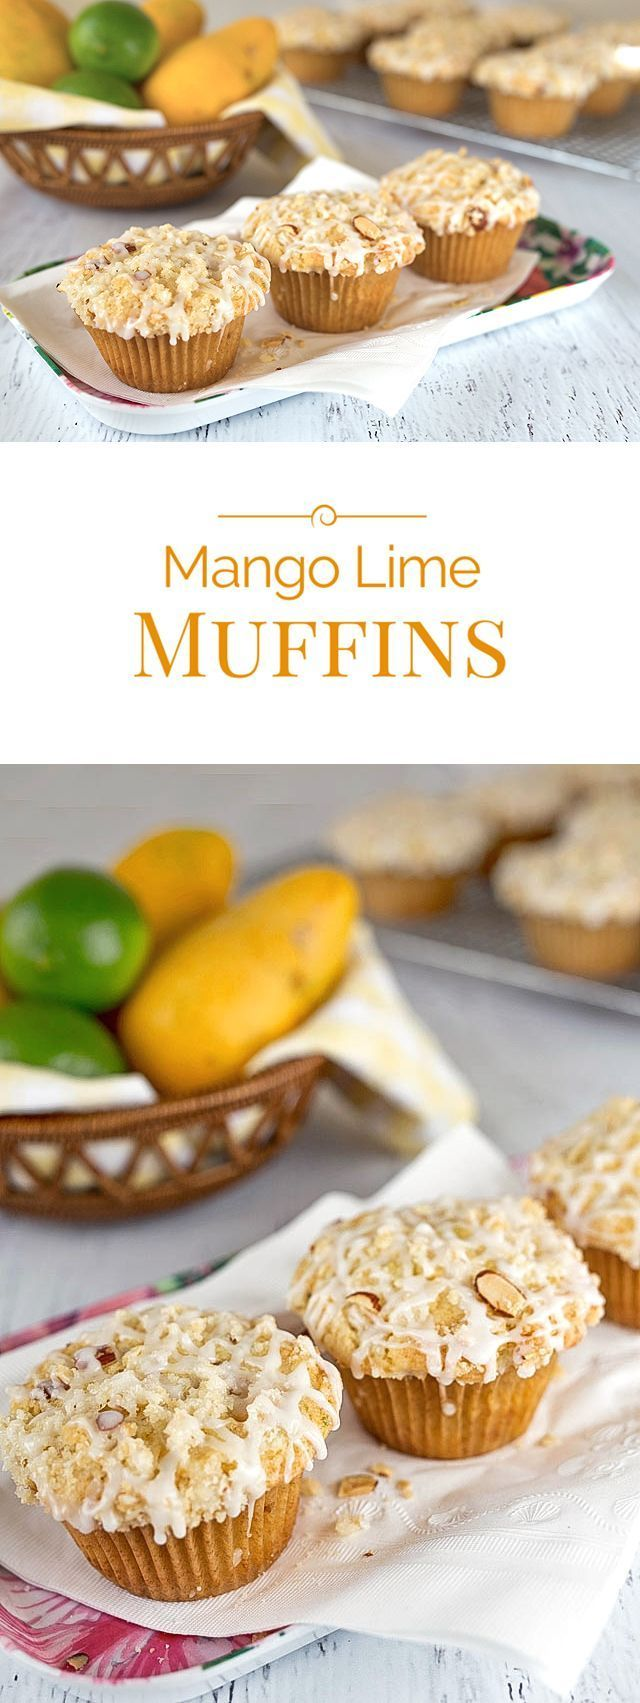 Tender, light, fluffy muffin Mango Lime Muffins loaded with chunks of mango, topped with a sweet, almond streusel, and drizzled with a tart lime glaze.